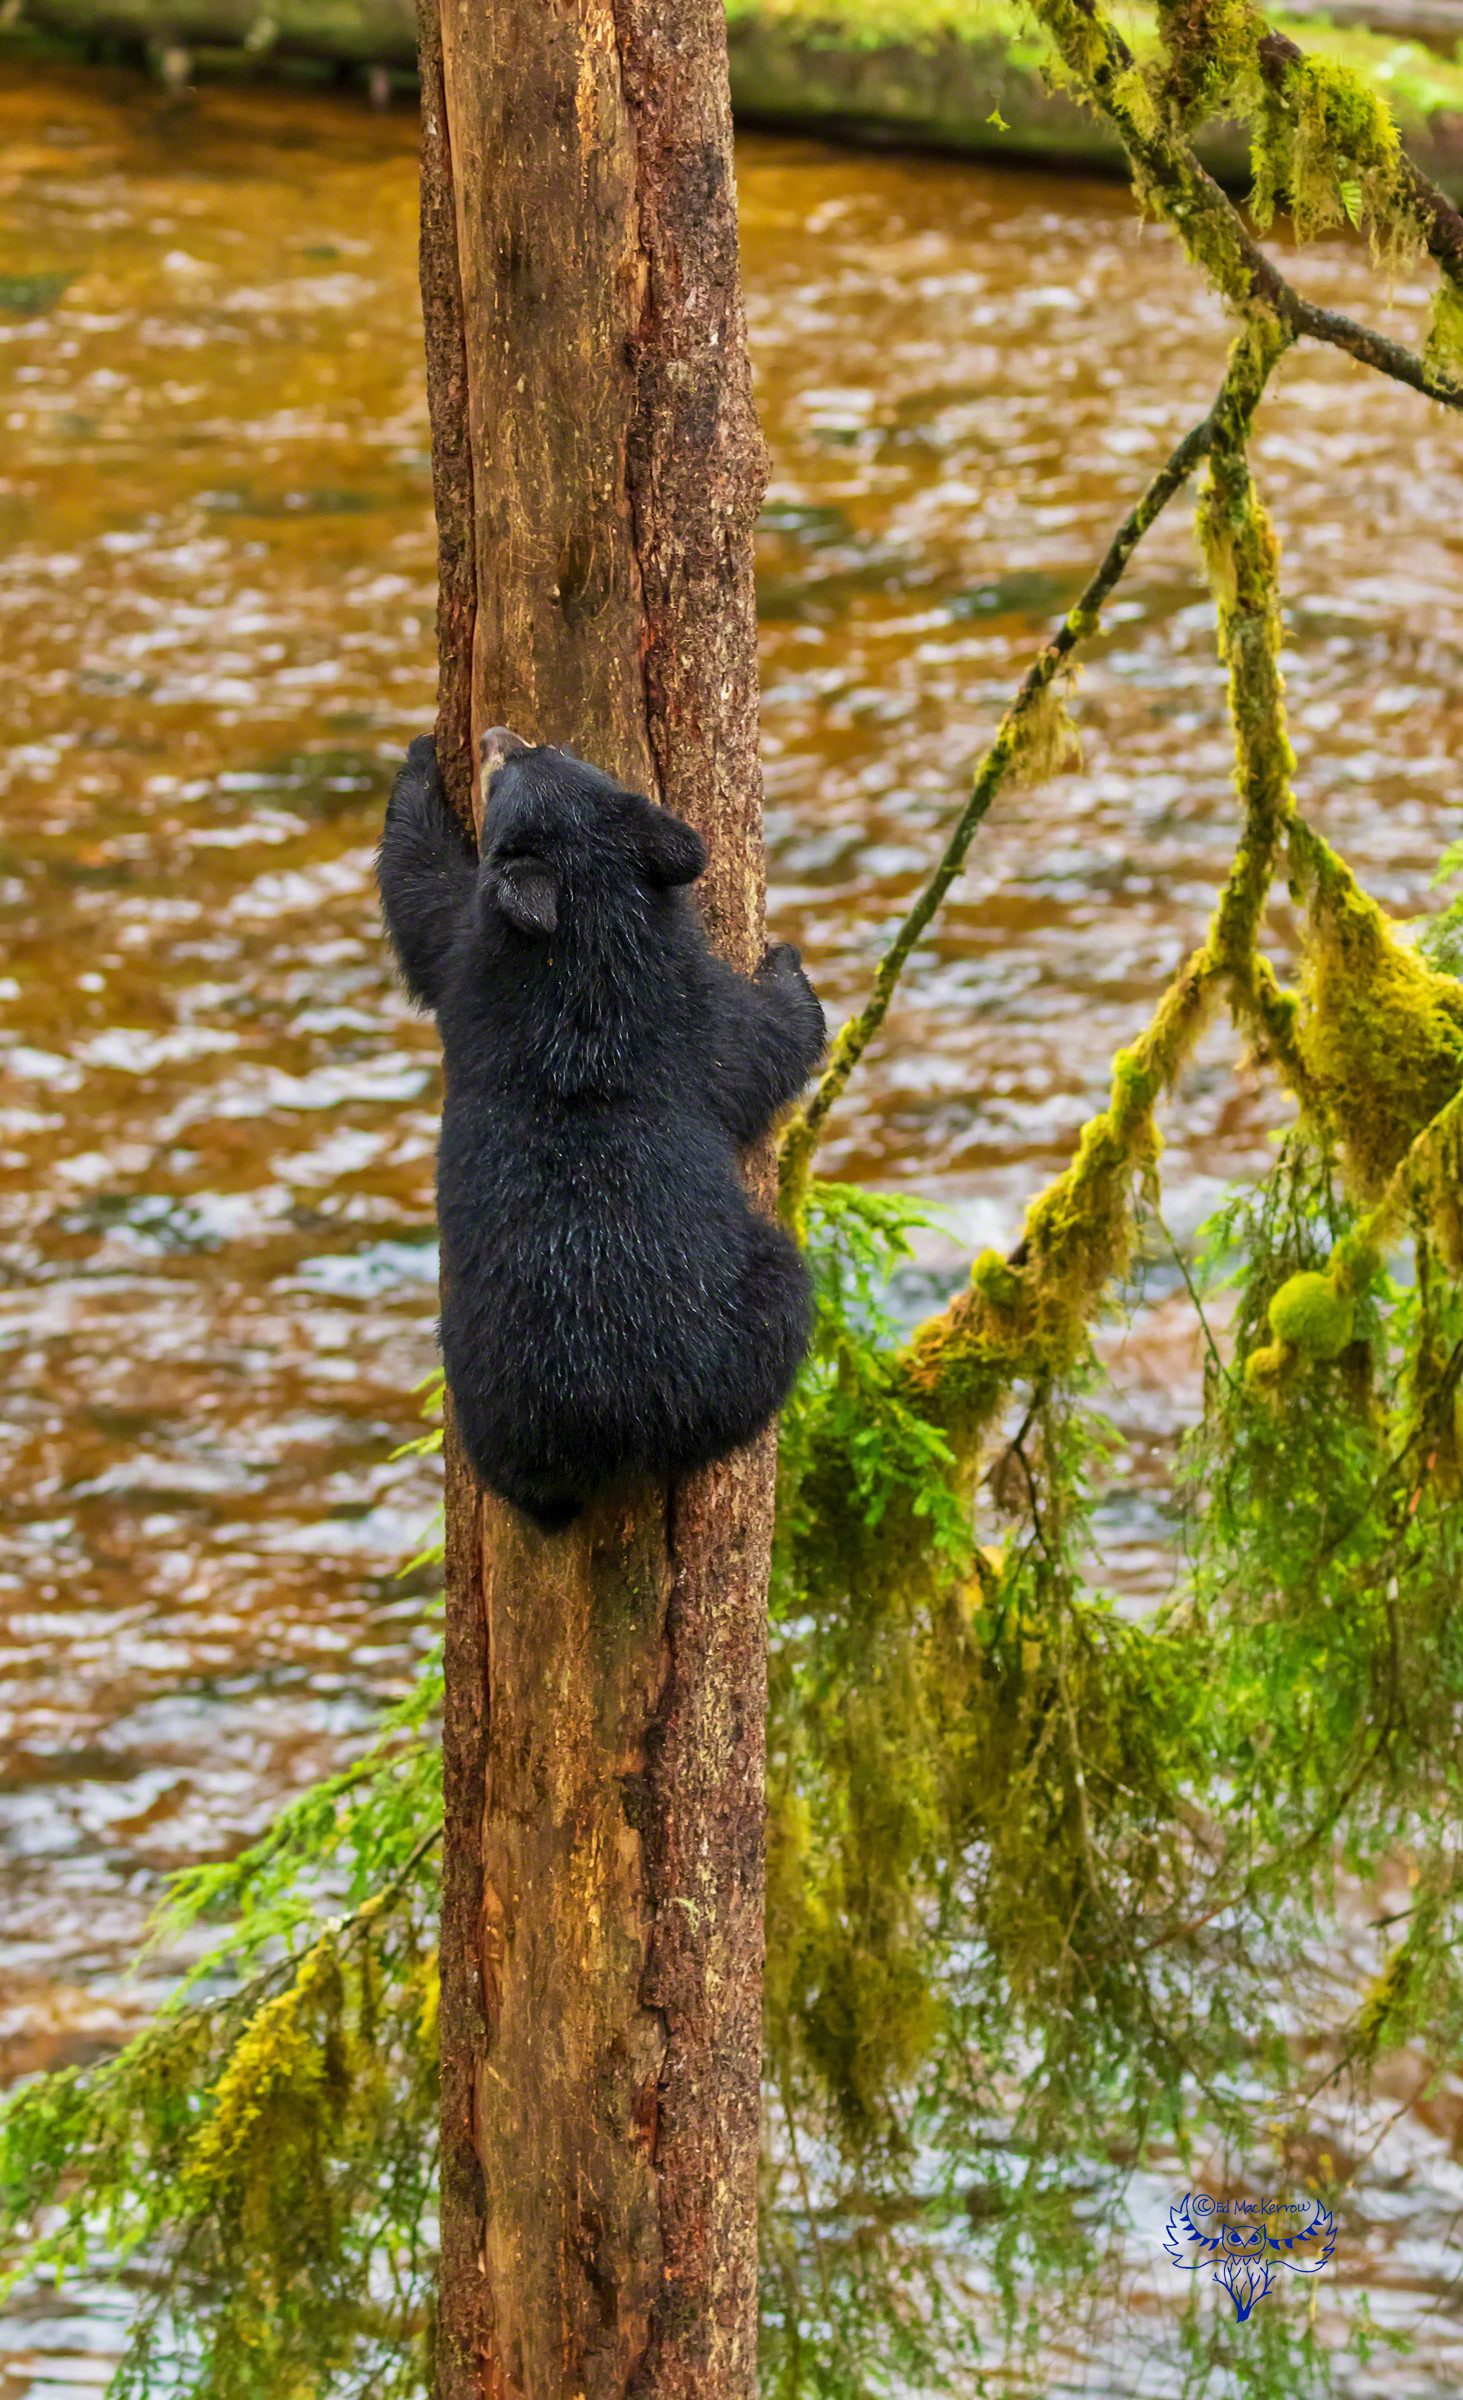 Black bear cub gracefully climbs slippery tree in the rain.